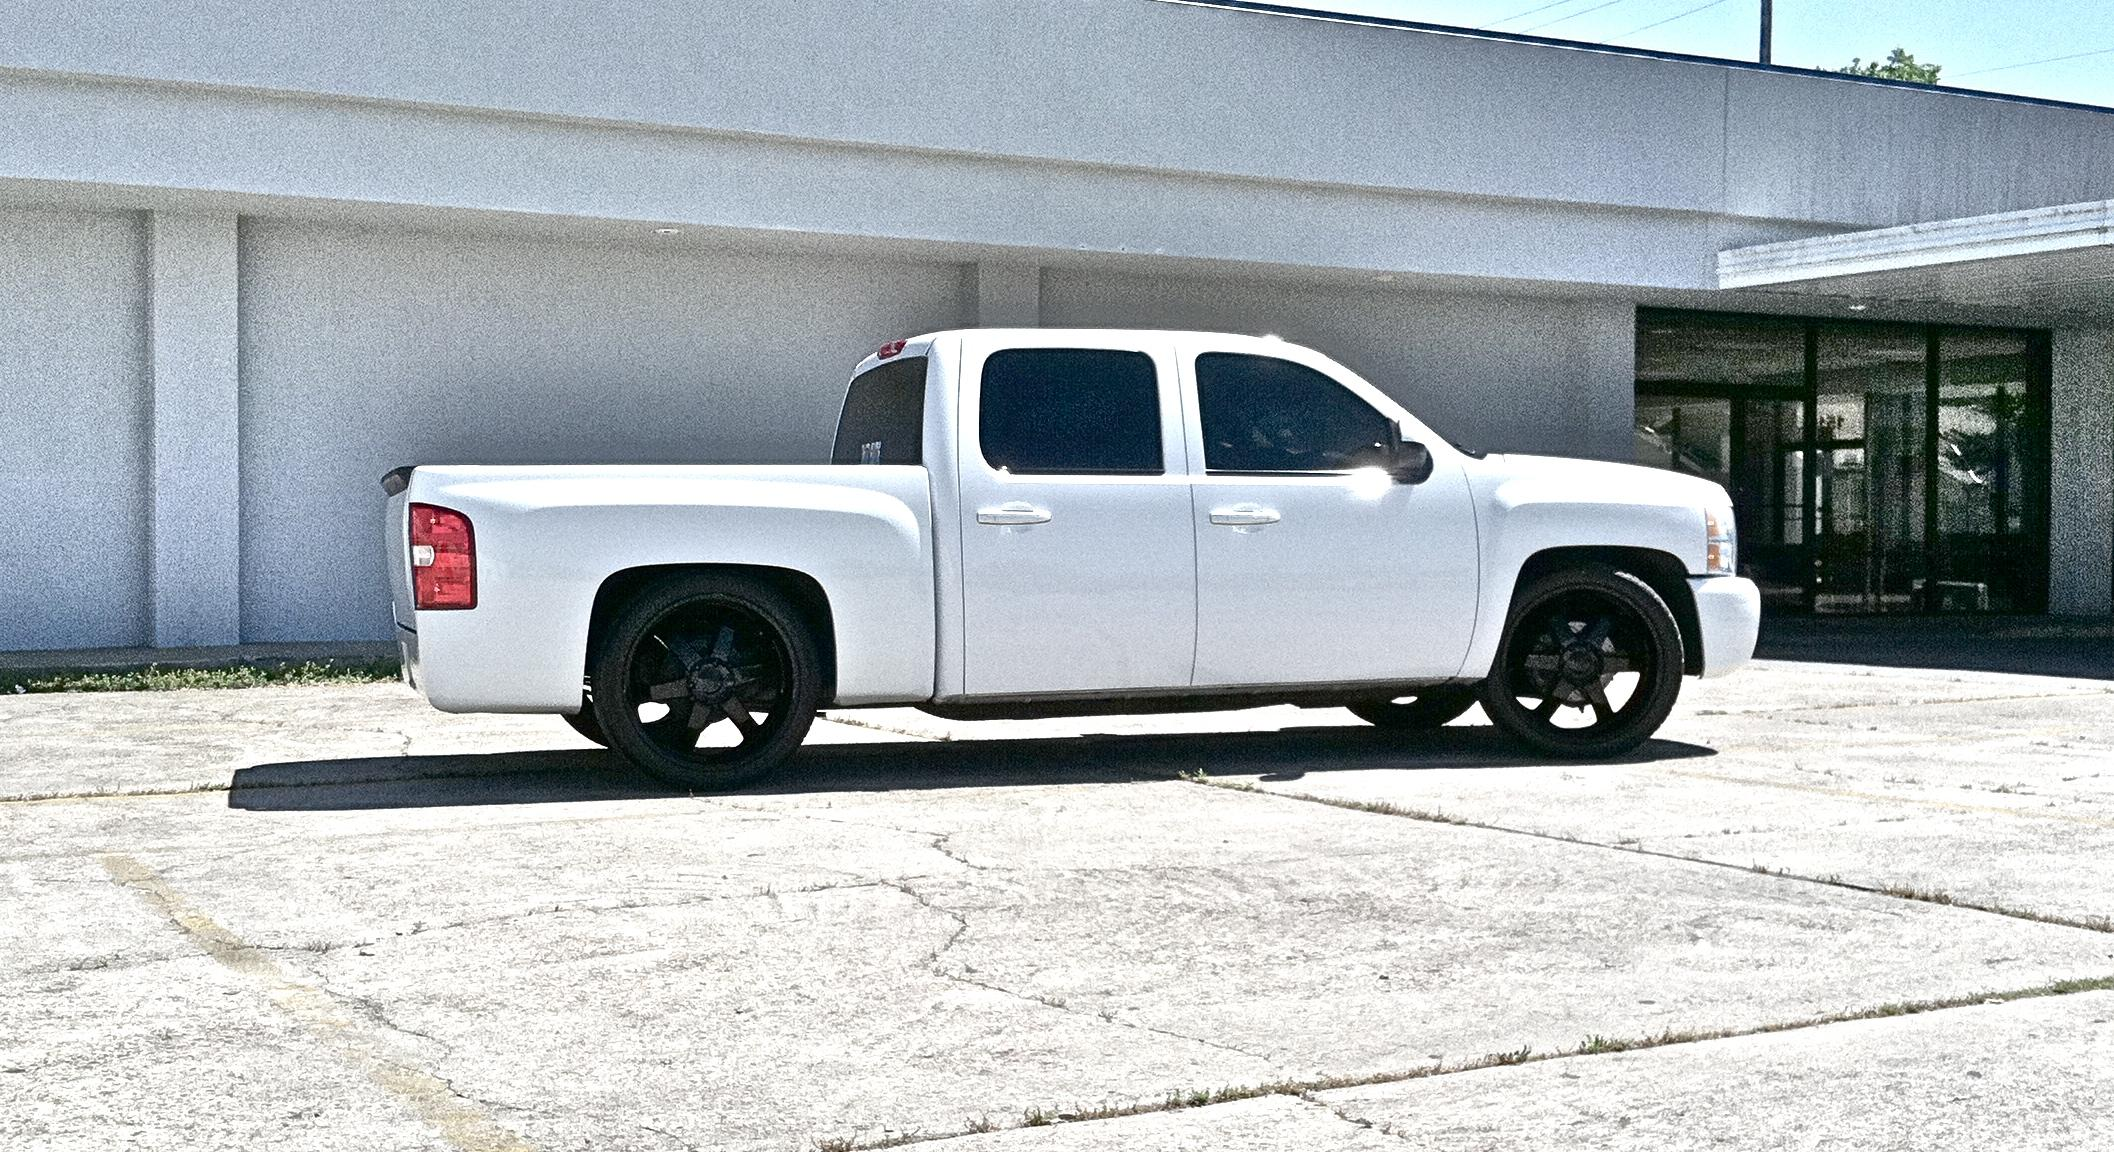 paulbecnel 2007 chevrolet silverado 1500 crew cab specs photos modification info at cardomain. Black Bedroom Furniture Sets. Home Design Ideas